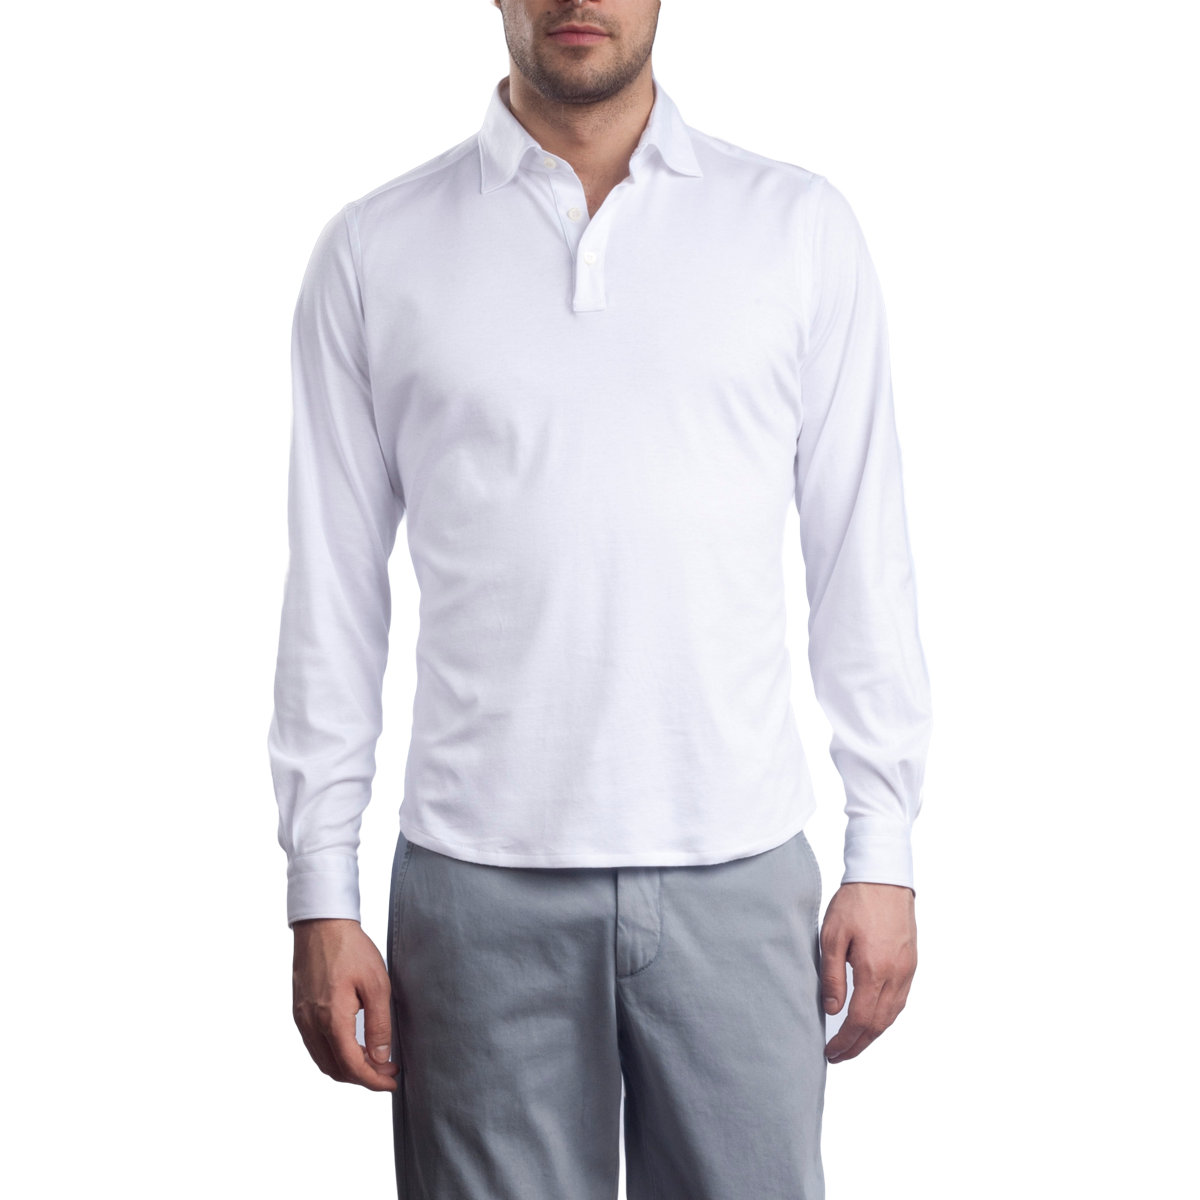 Find great deals on eBay for mens long sleeve polo shirt white. Shop with confidence.